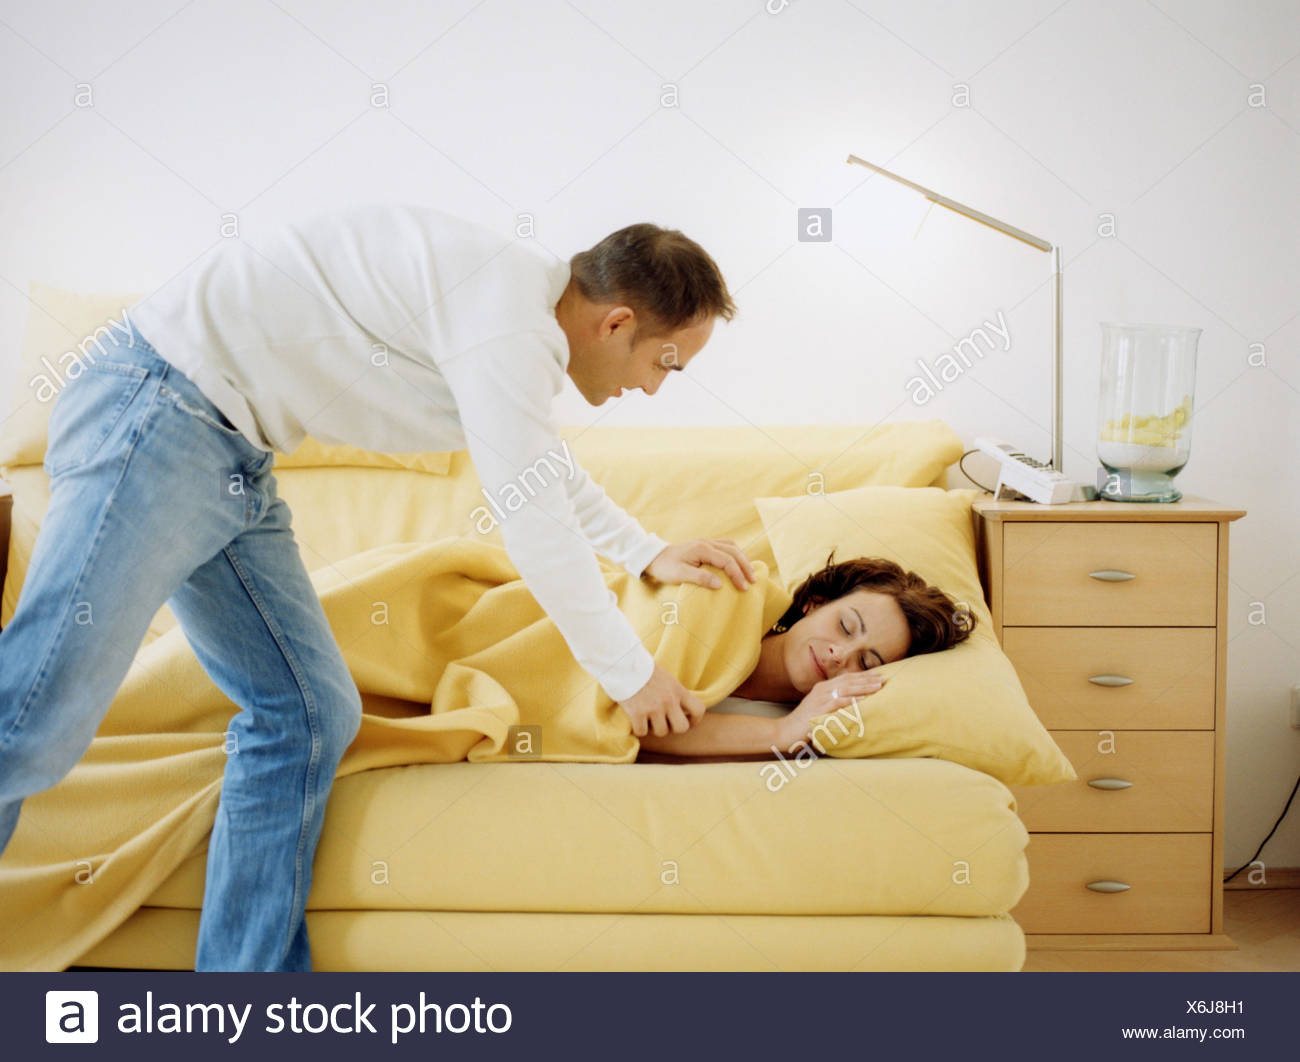 how to take a woman to bed